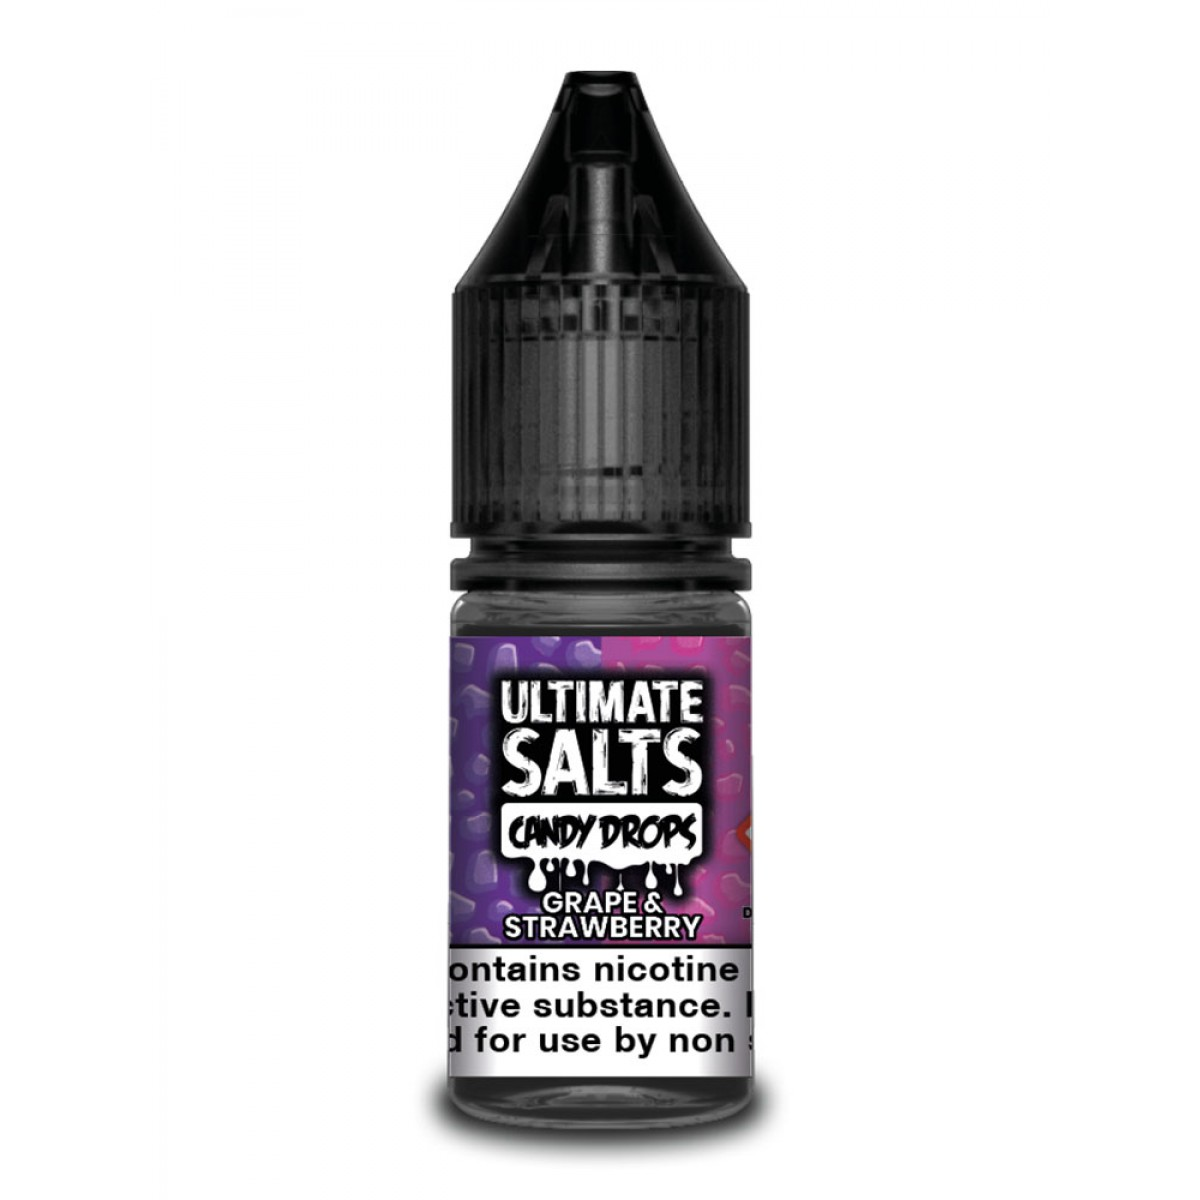 GRAPE & STRAWBERRY BY ULTIMATE SALTS CANDY DROPS